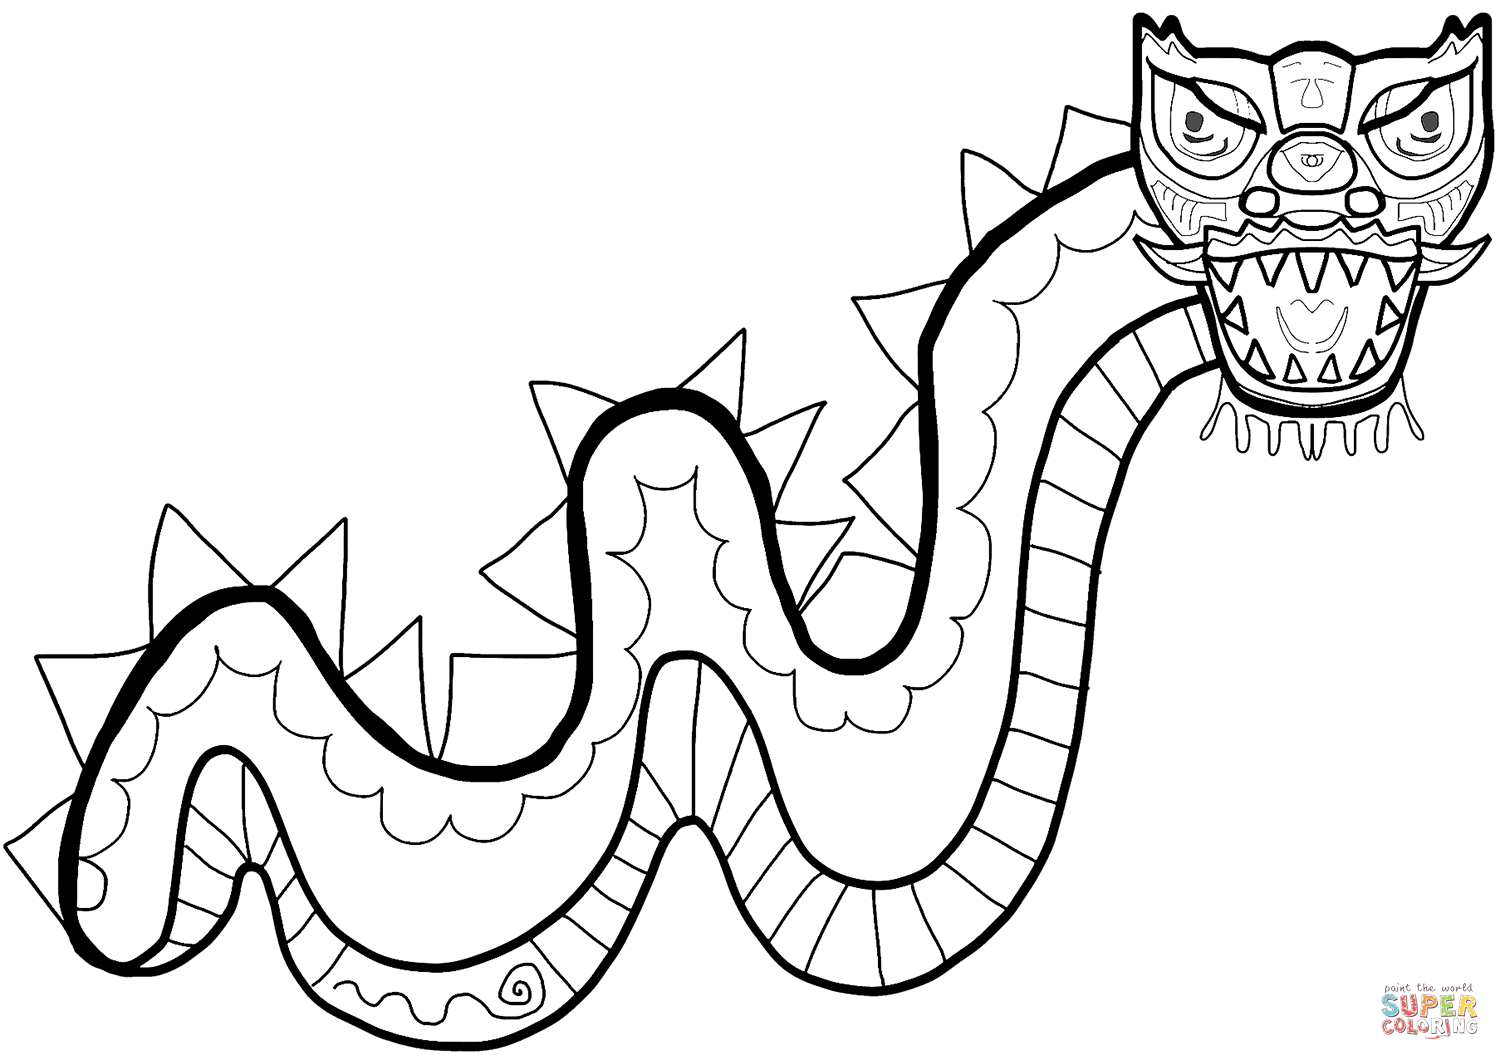 chinese dragon coloring page free printable chinese dragon coloring pages for kids page dragon coloring chinese